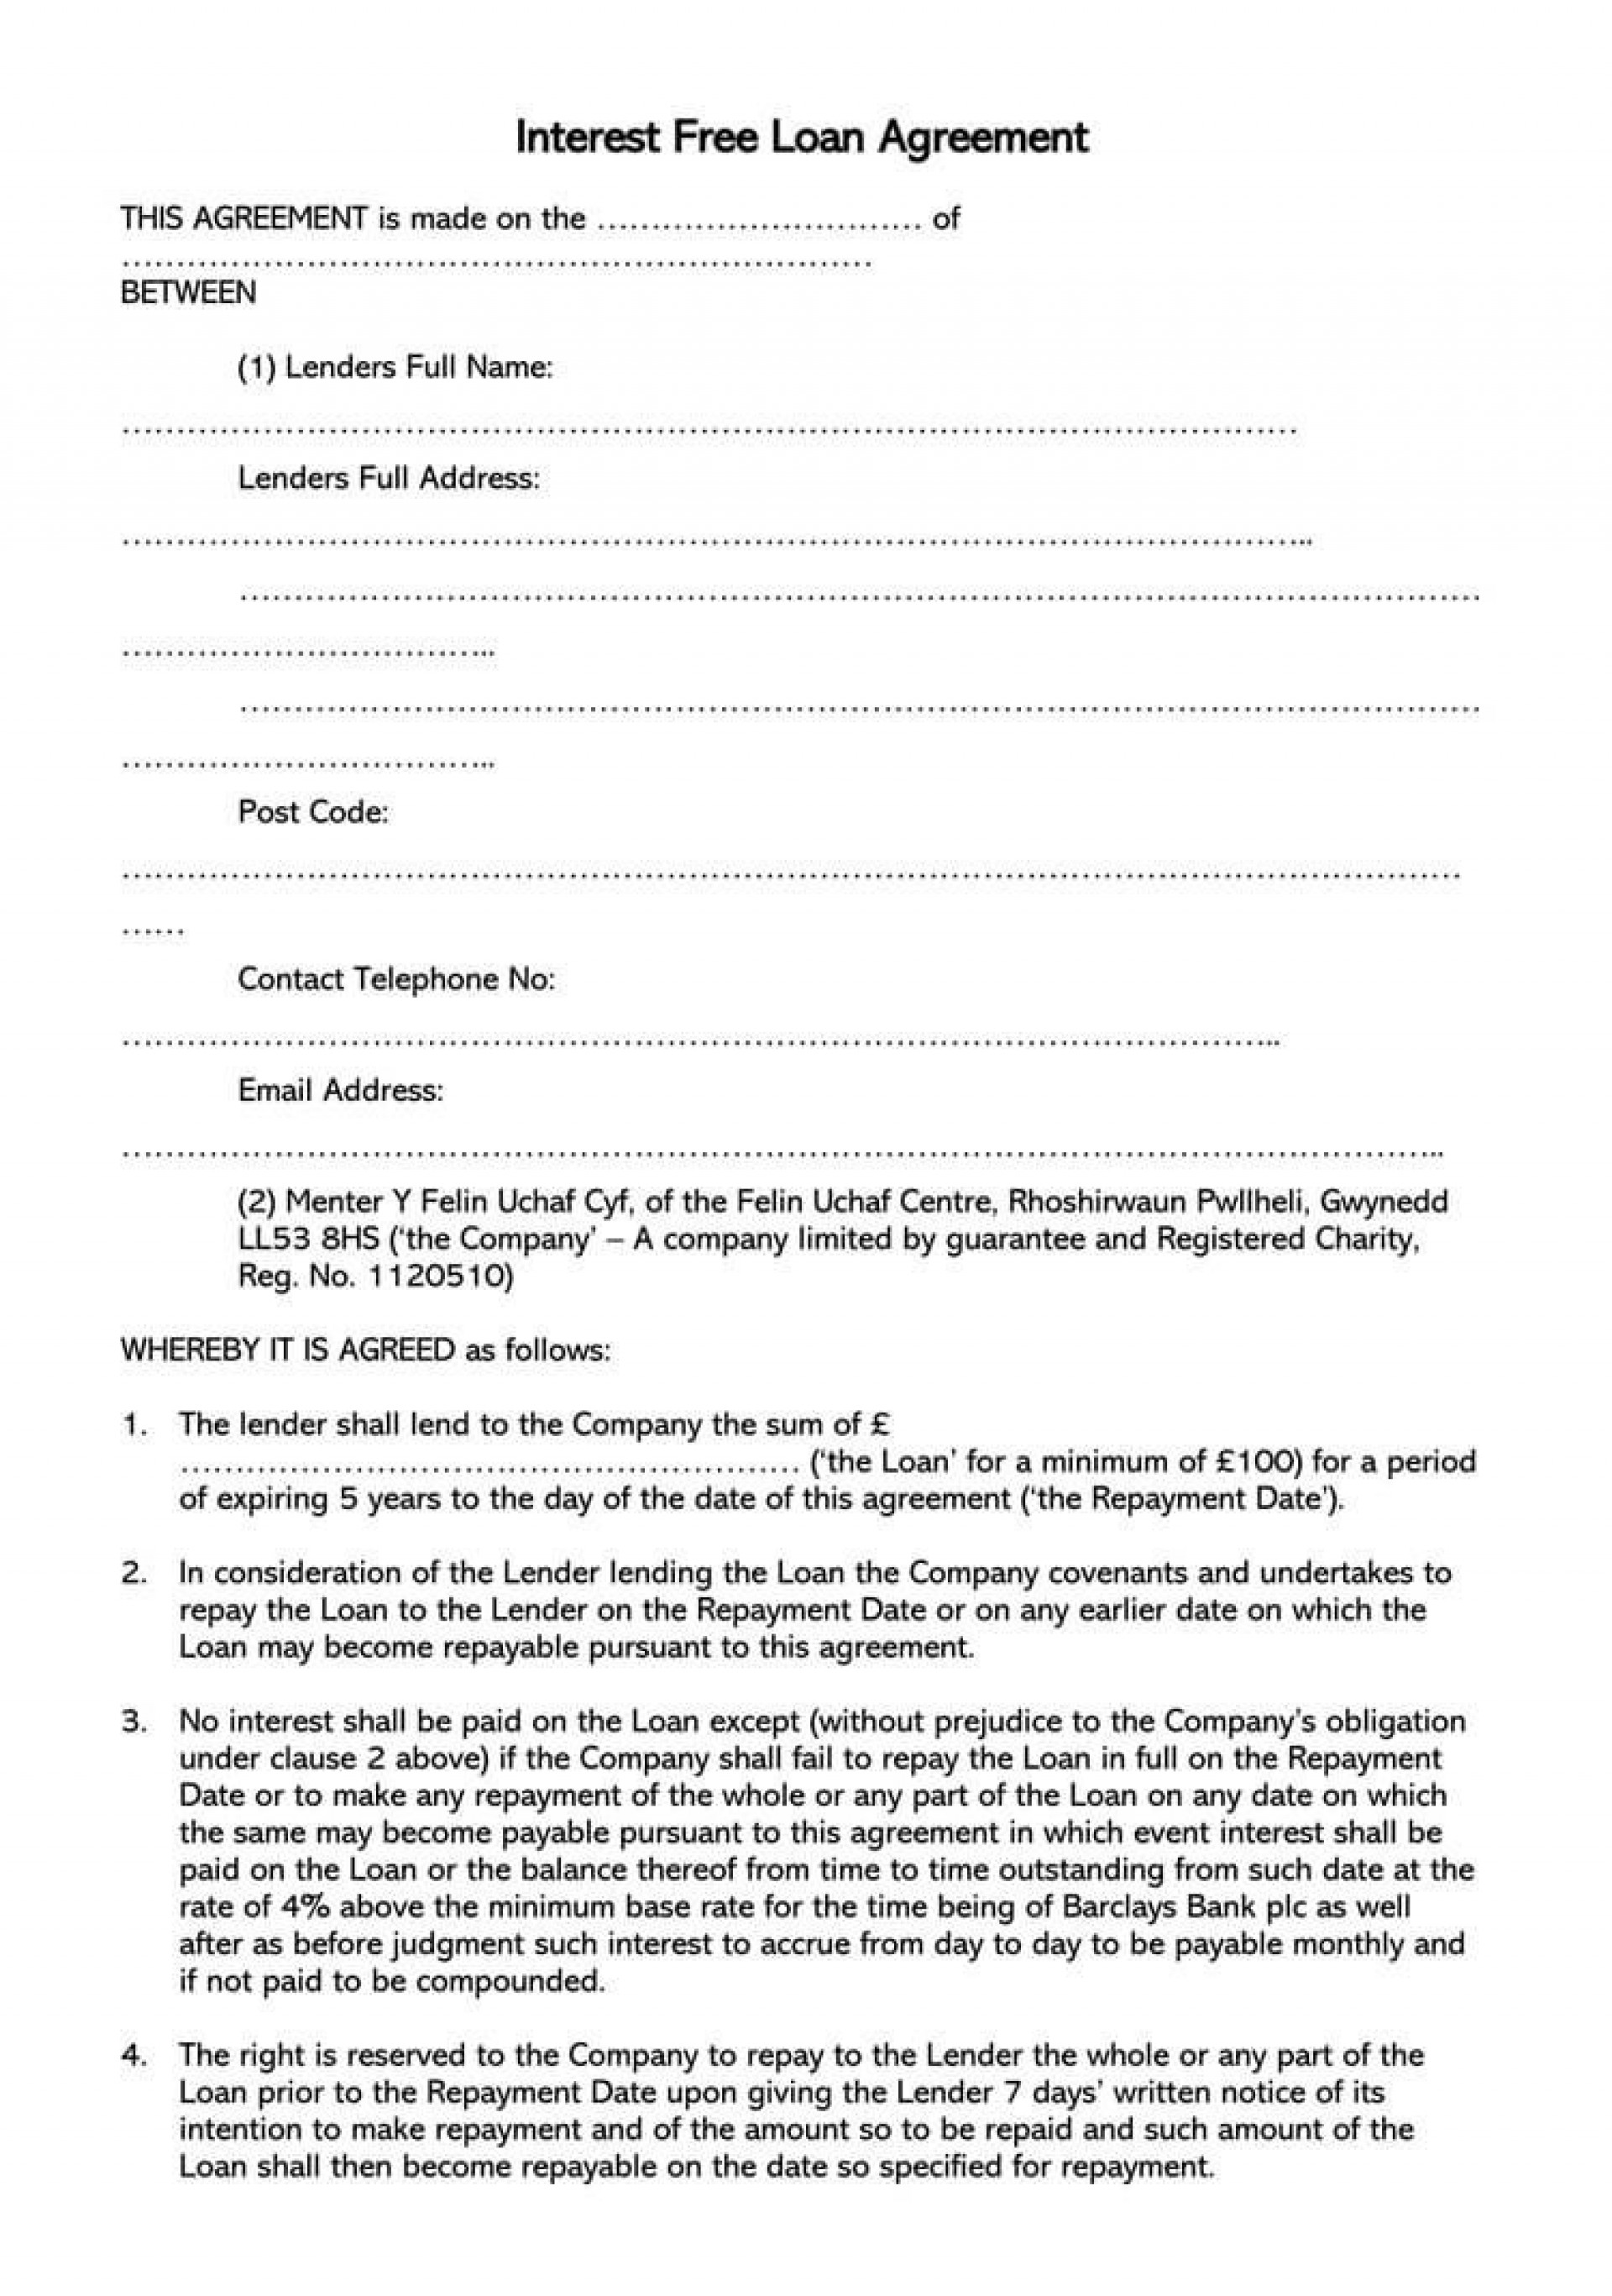 003 Simple Free Loan Agreement Template Example  Ontario Word Pdf Australia South Africa1920